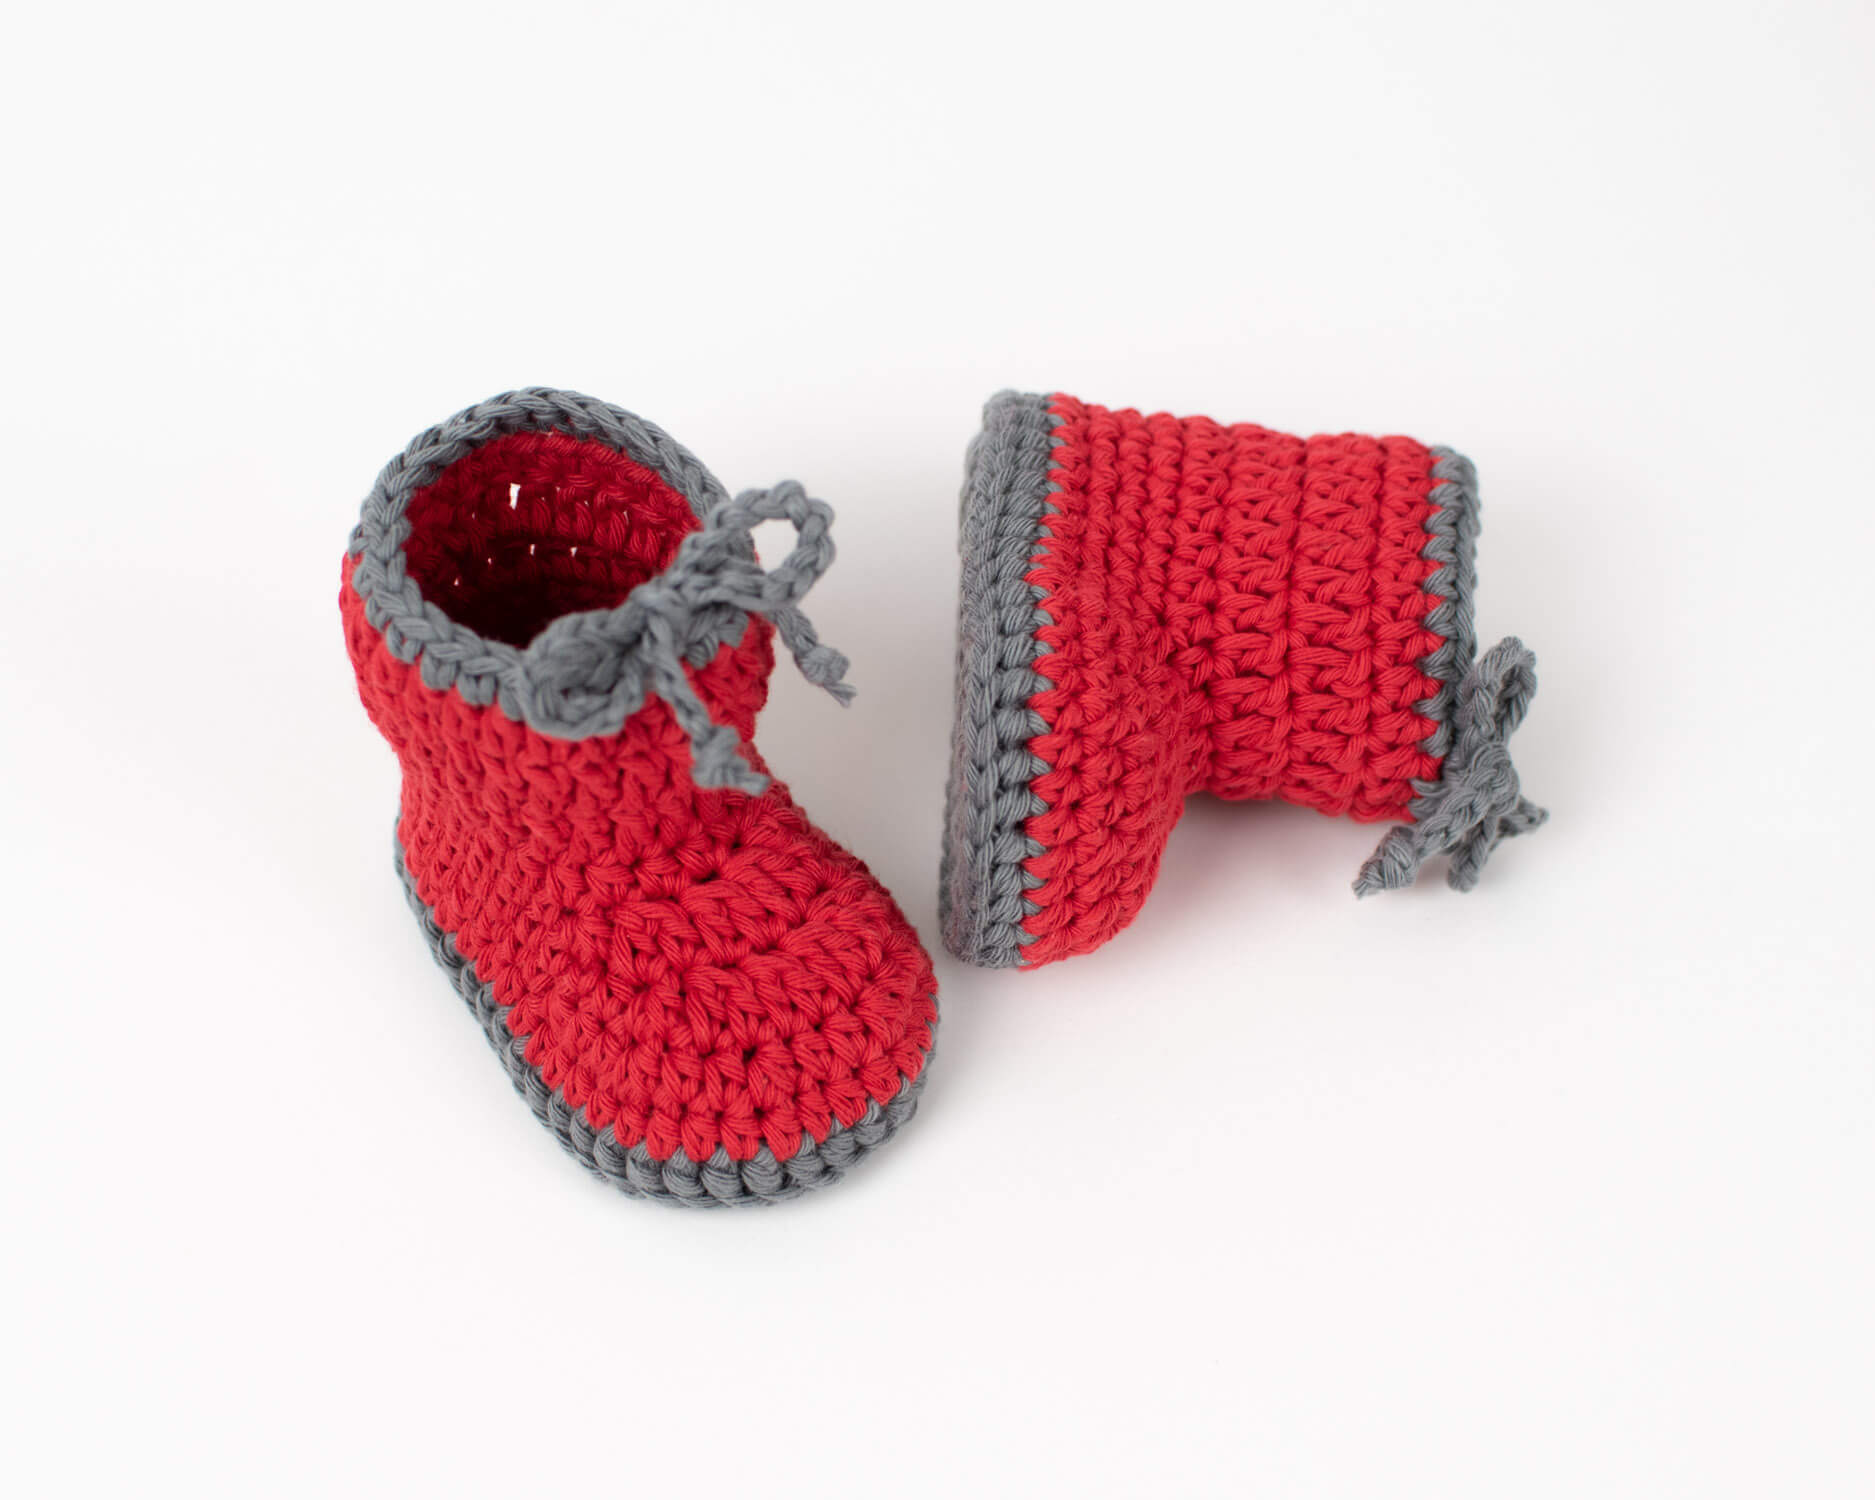 8a24a18138c60 Crochet Baby Rain Booties | Croby Patterns